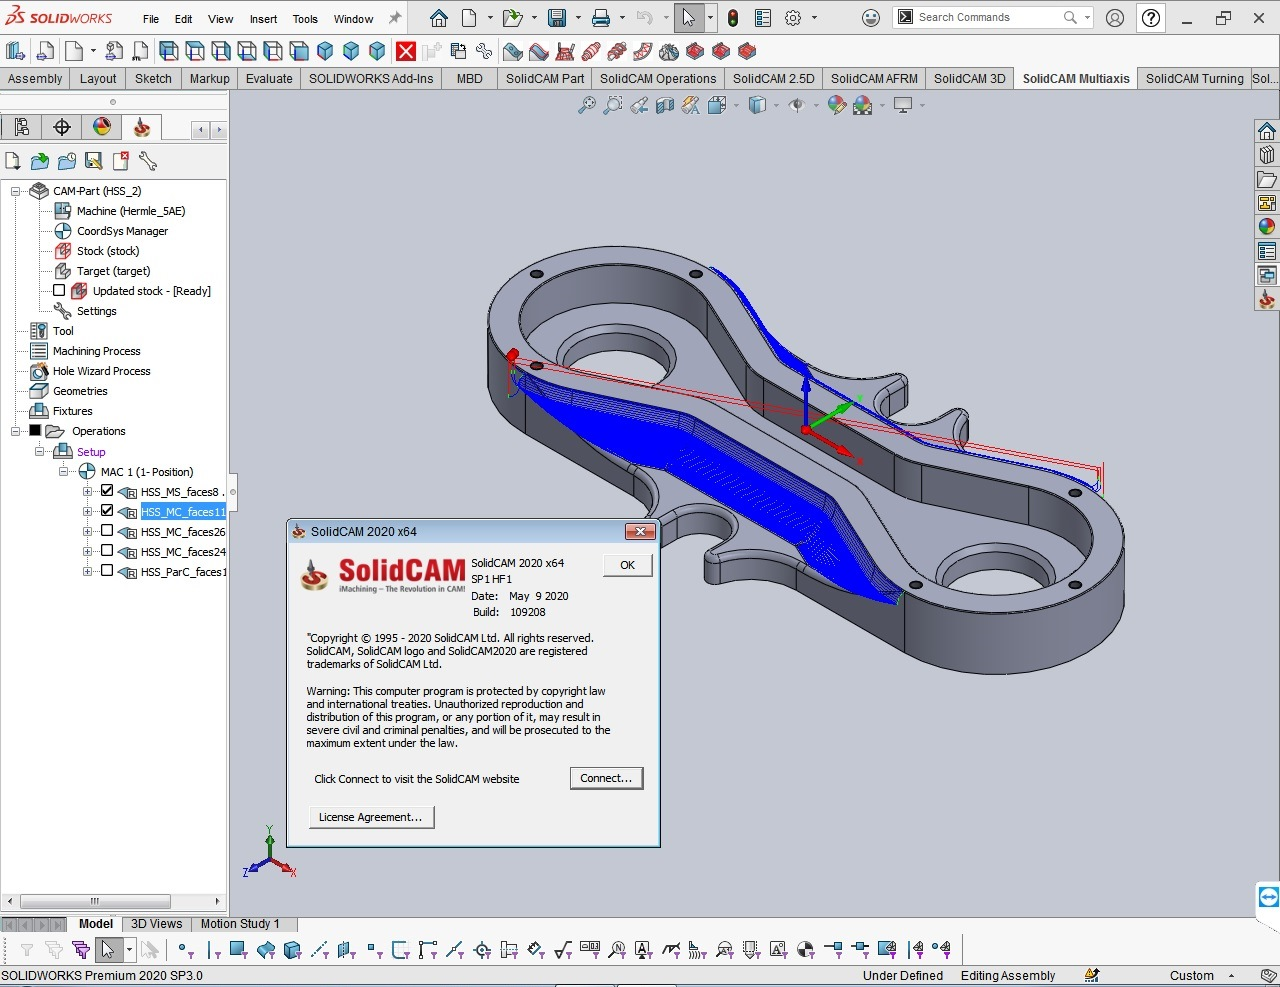 Working with SolidCAM 2020 SP1 HF1 for SolidWorks 2012-2020 full license